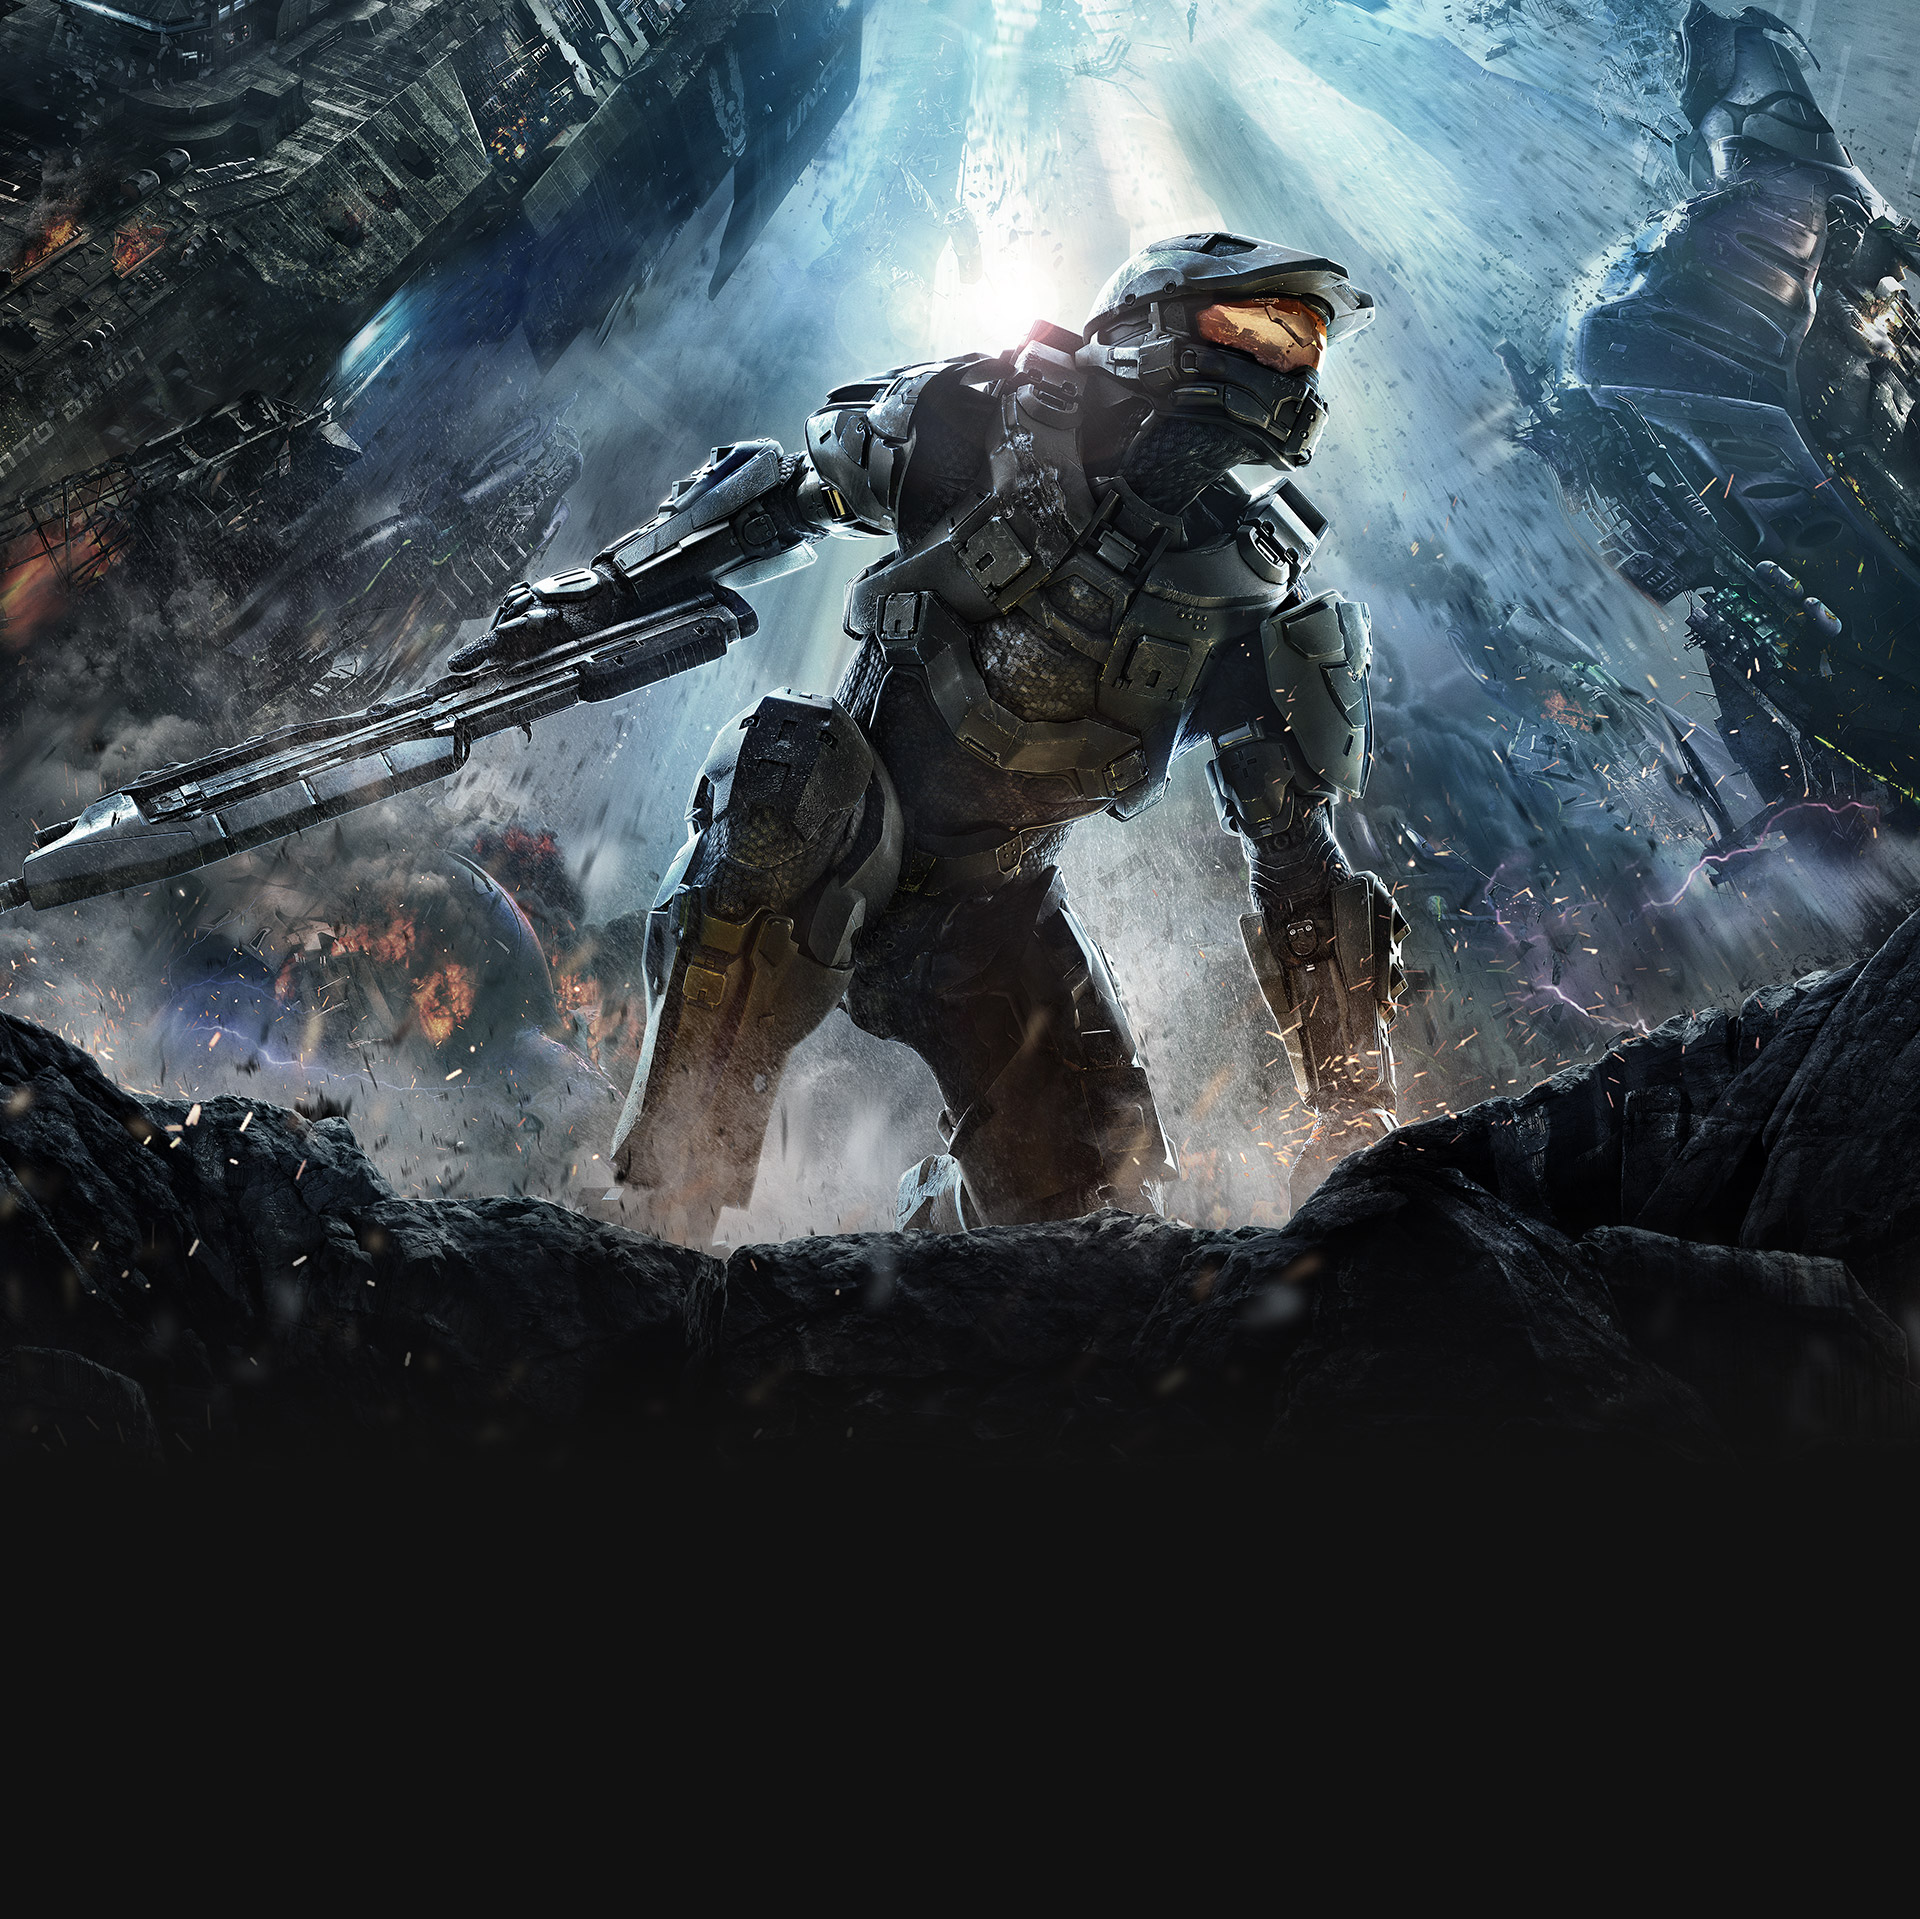 Halo 4, Master Chief kneels with an assault rifle in one hand surrounded by forerunner structures